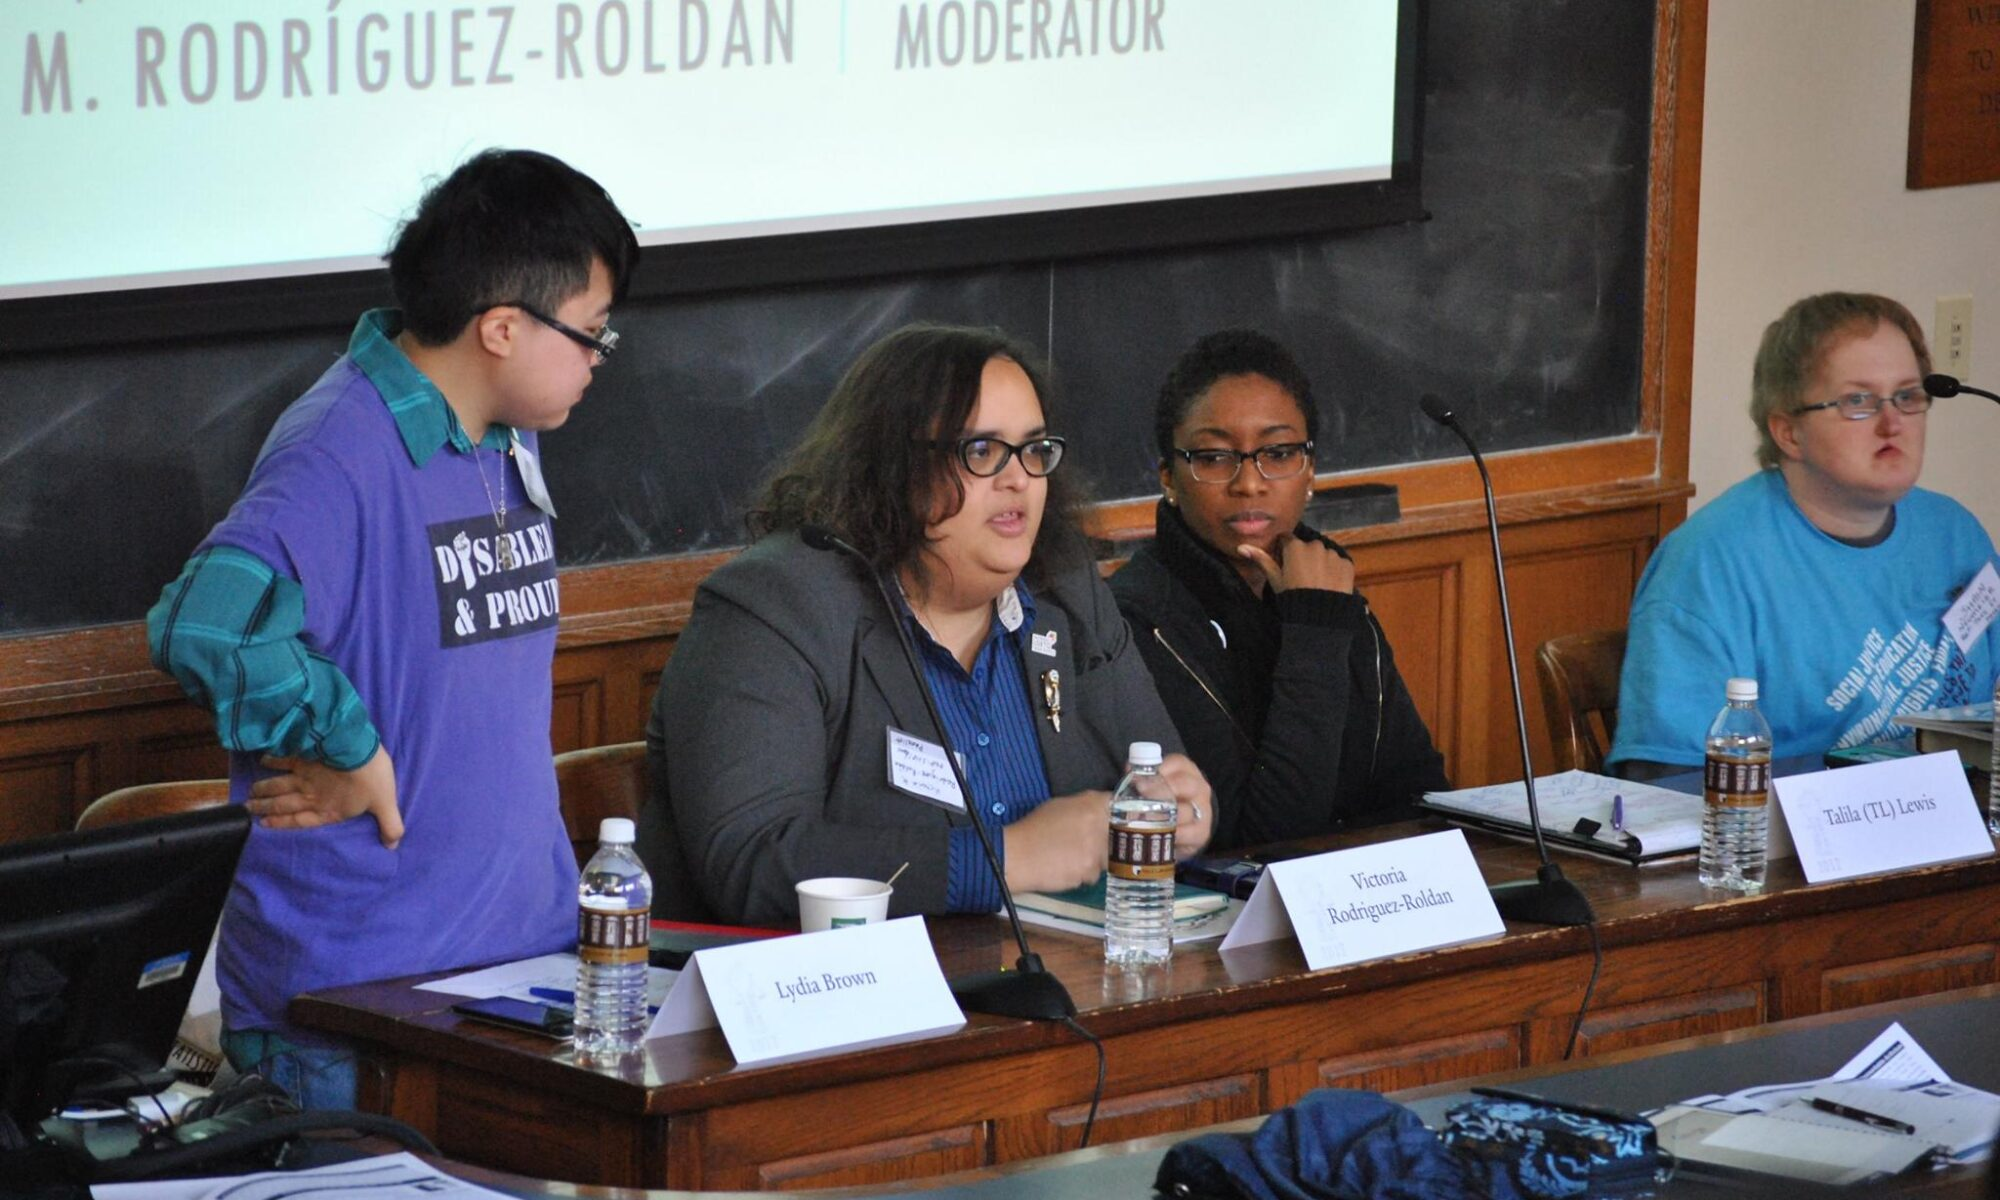 Photo of Lydia Brown (a young East Asian person), Victoria Rodríguez-Roldán (a young Latina woman), Talila Lewis (a young Black person), and Shain Neumeier (a young white person) sitting at the front of a wood-paneled classroom.